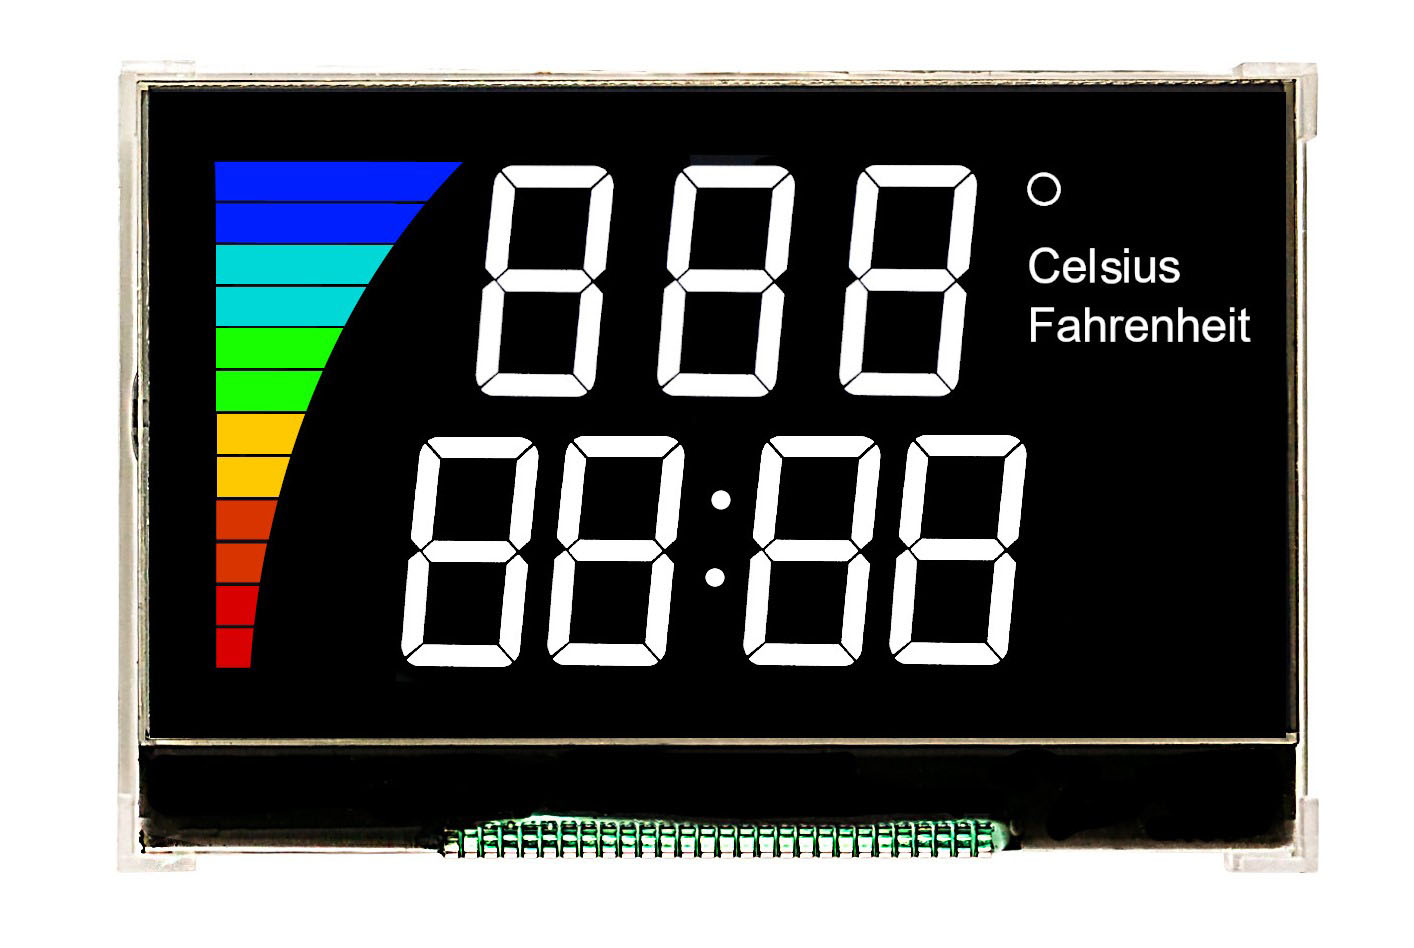 The Pros And Cons Of Using A Segmented LCD